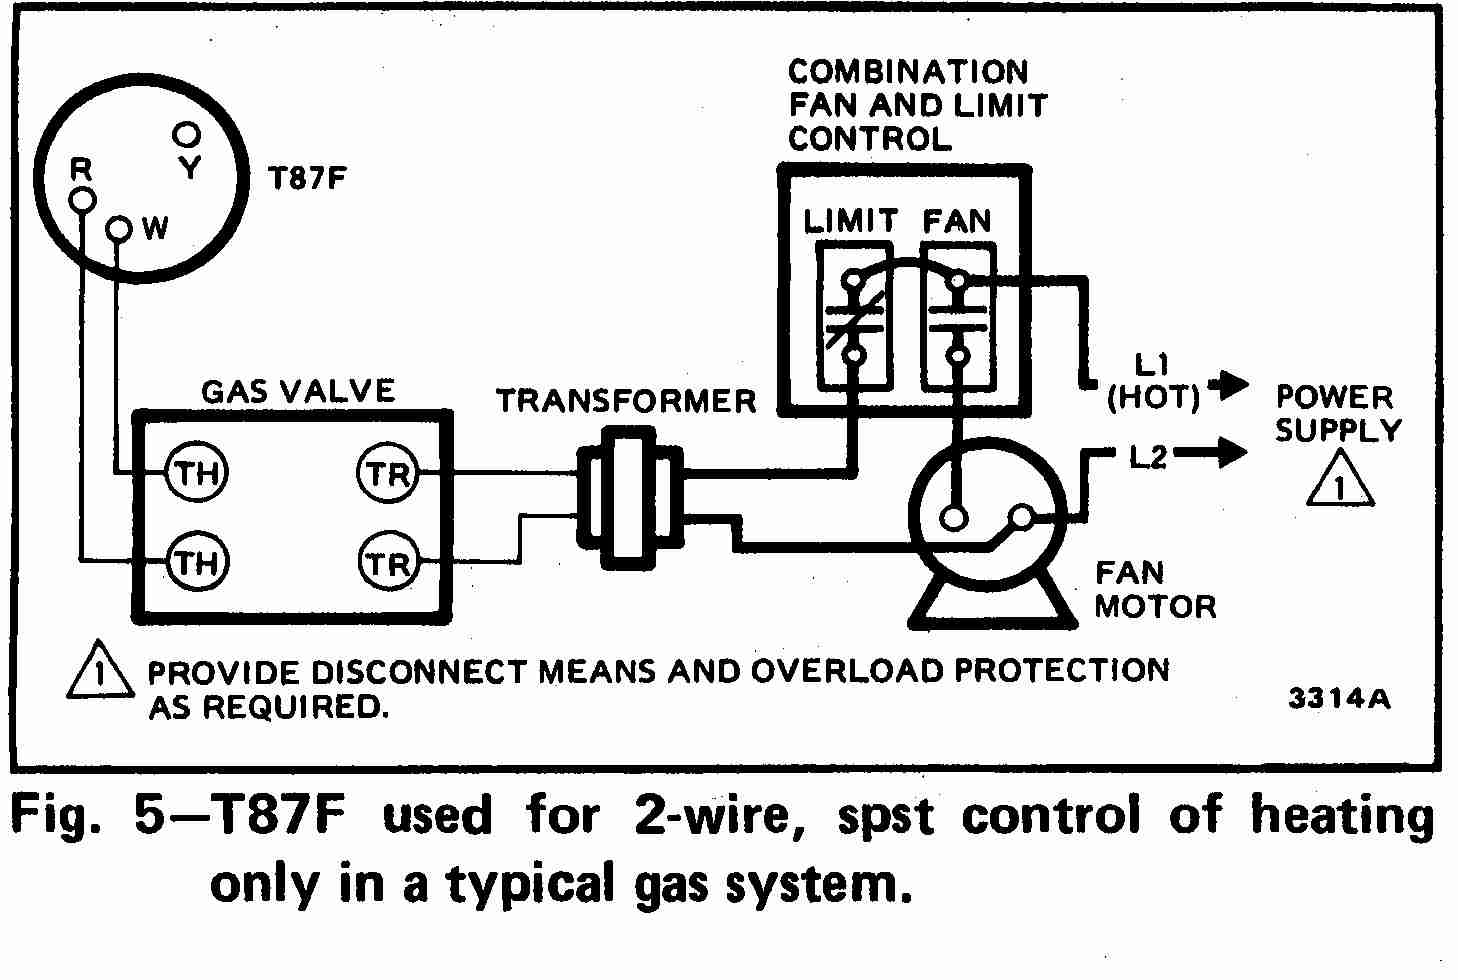 TT_T87F_0002_2Wg_DJF room thermostat wiring diagrams for hvac systems motor operated valve wiring diagram at gsmx.co